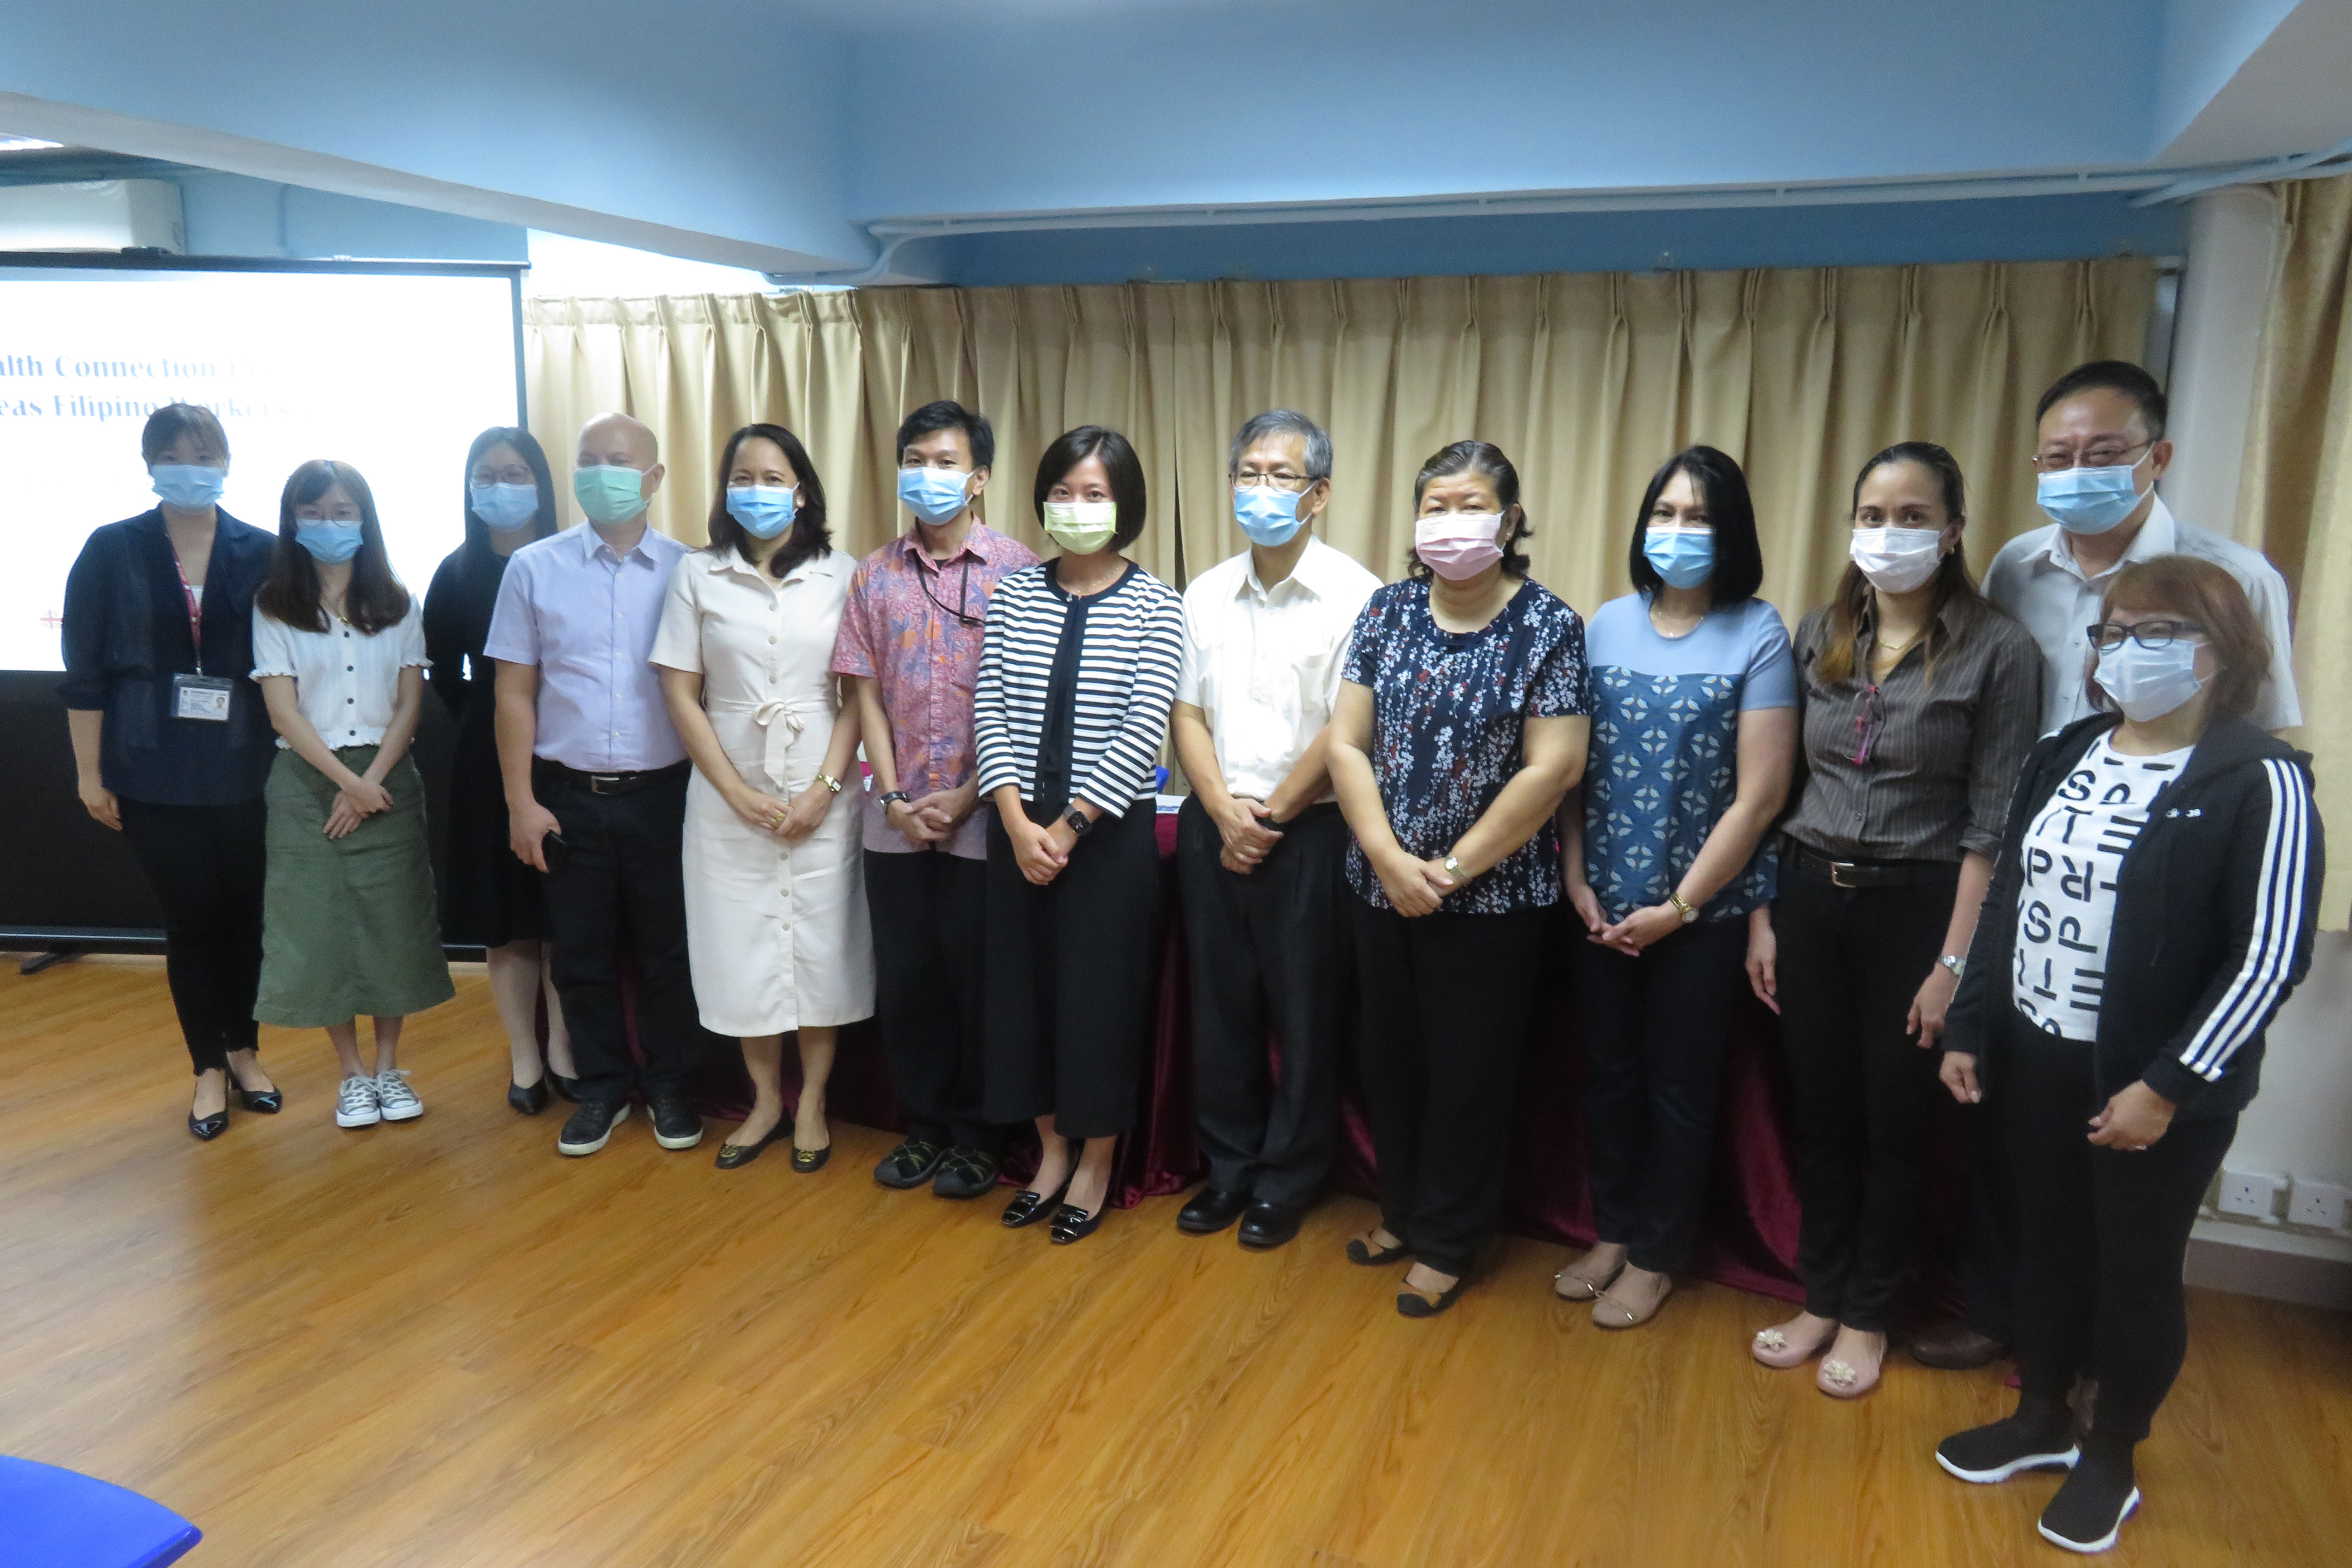 UM and Caritas Macau have launched the Health Connection Project for Overseas Filipino Workers in Macao